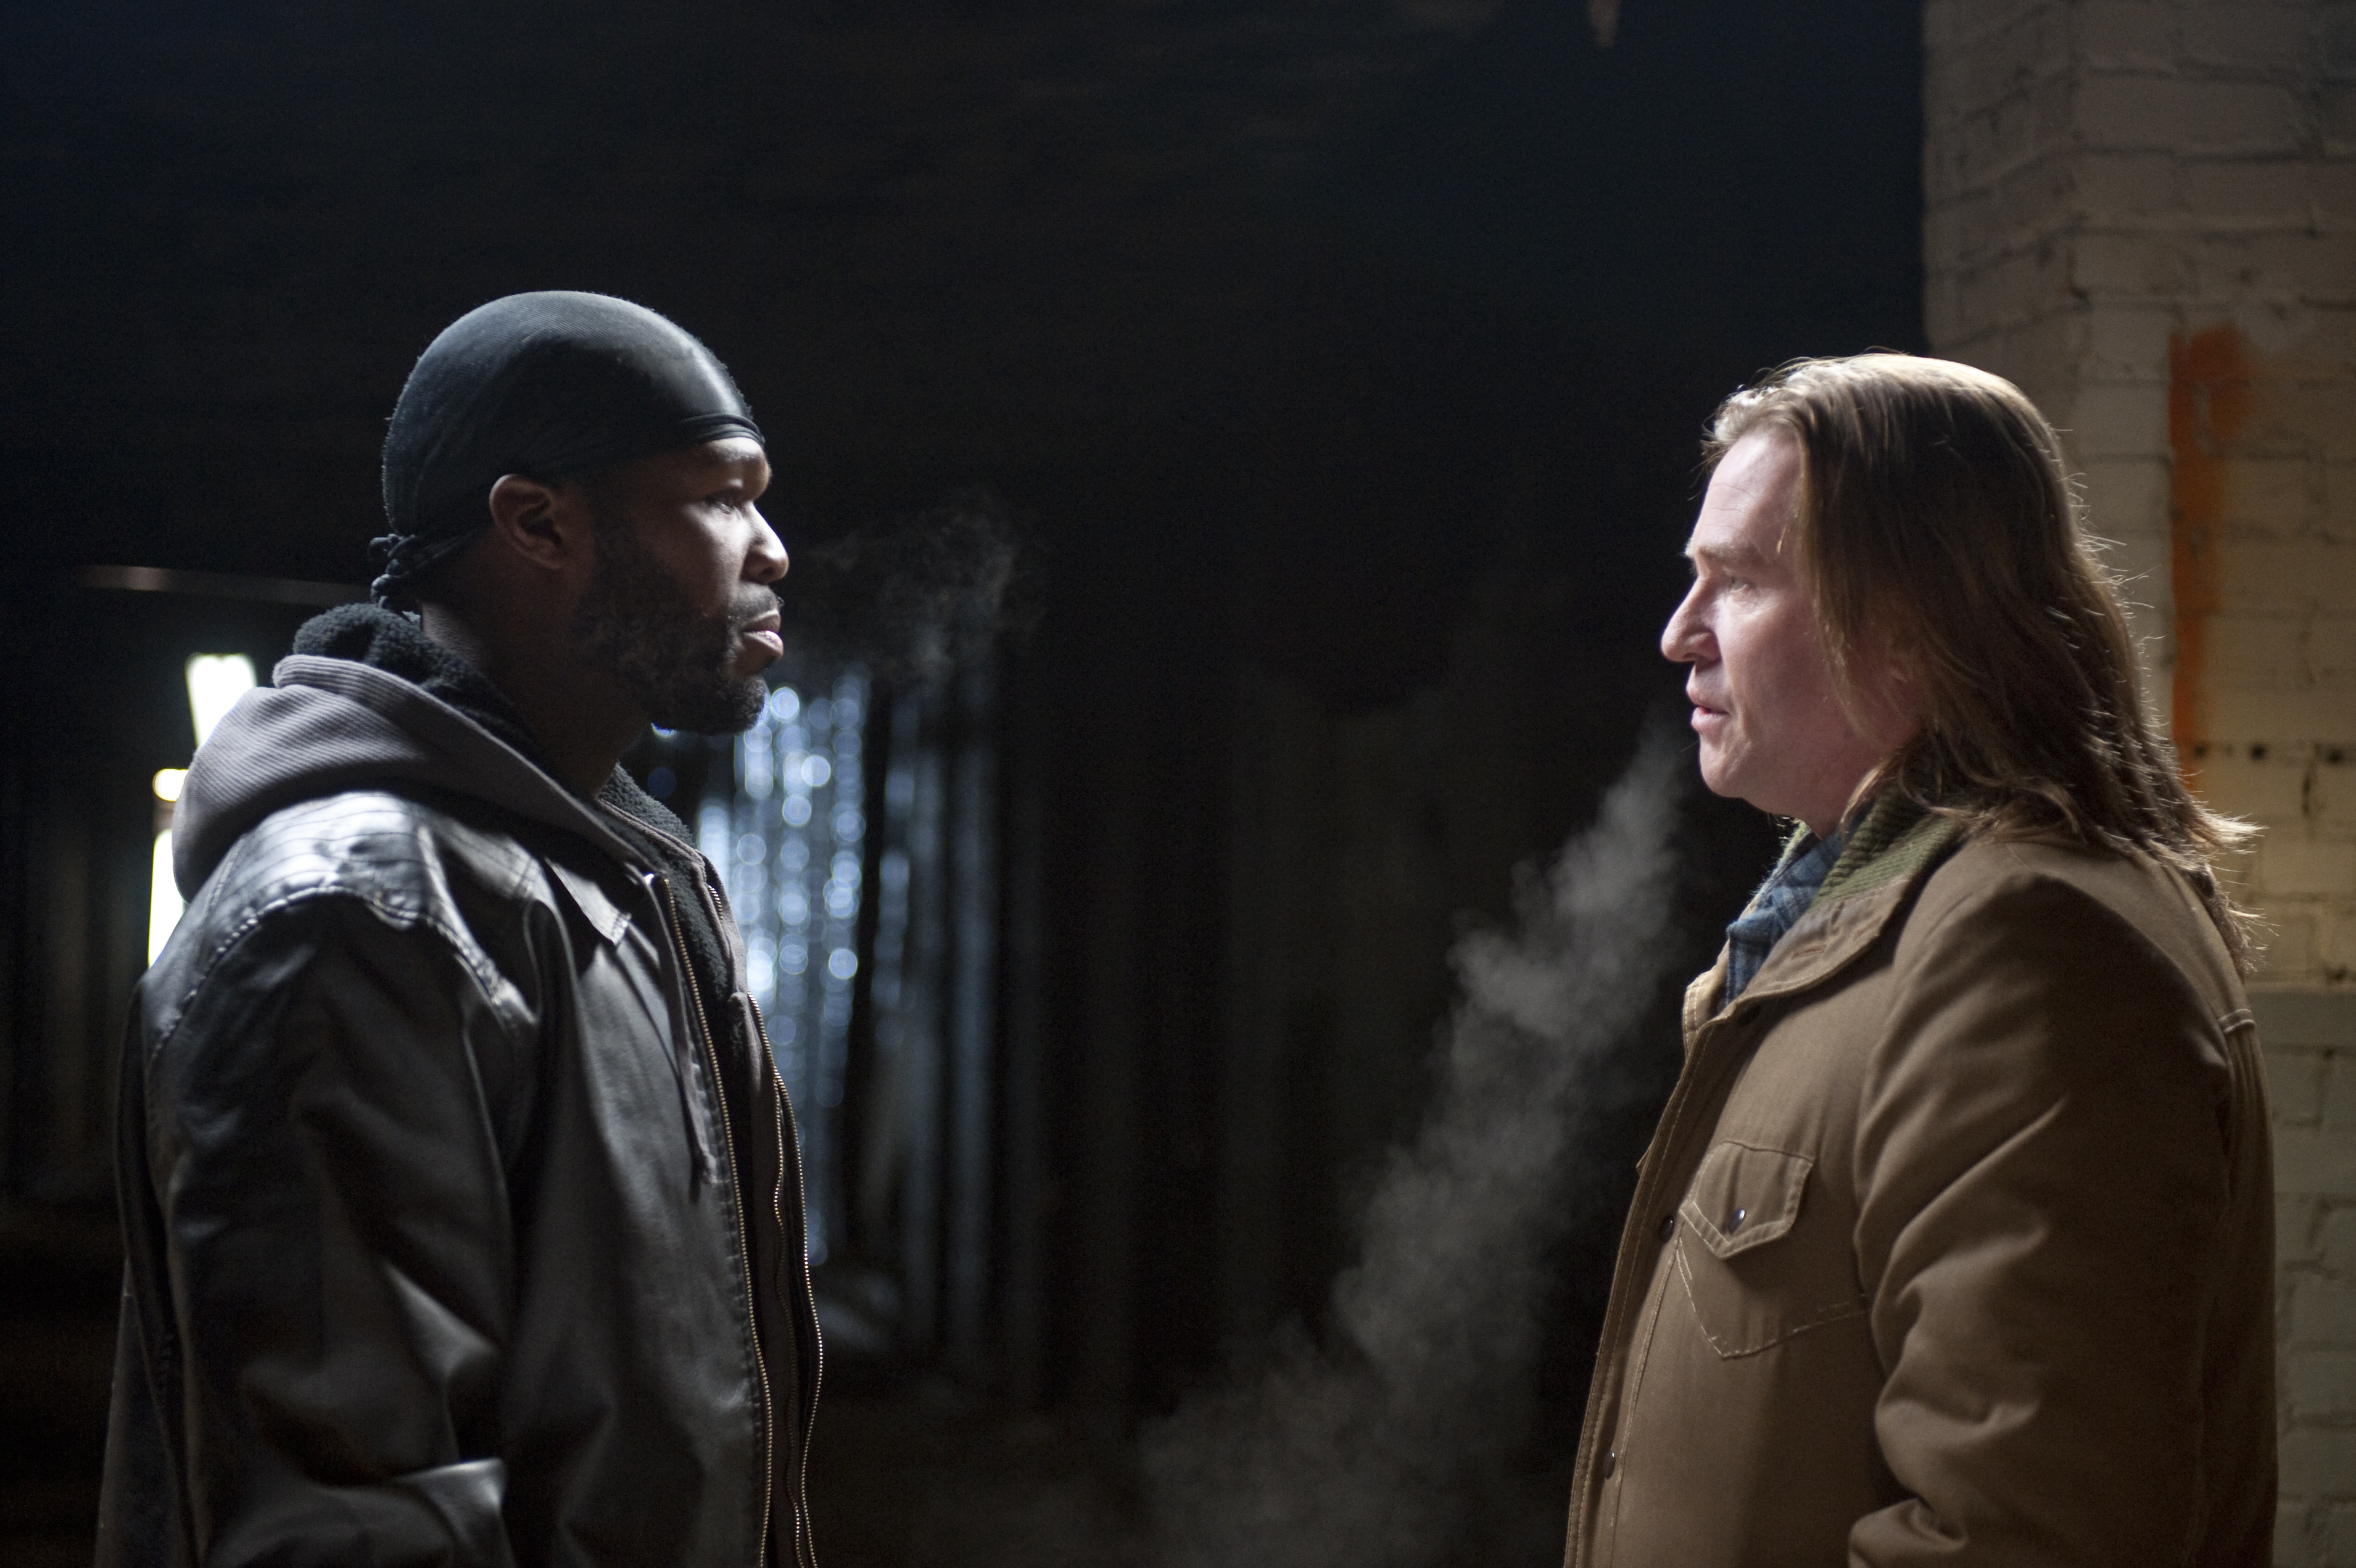 Val Kilmer and 50 Cent in Gun (2010)